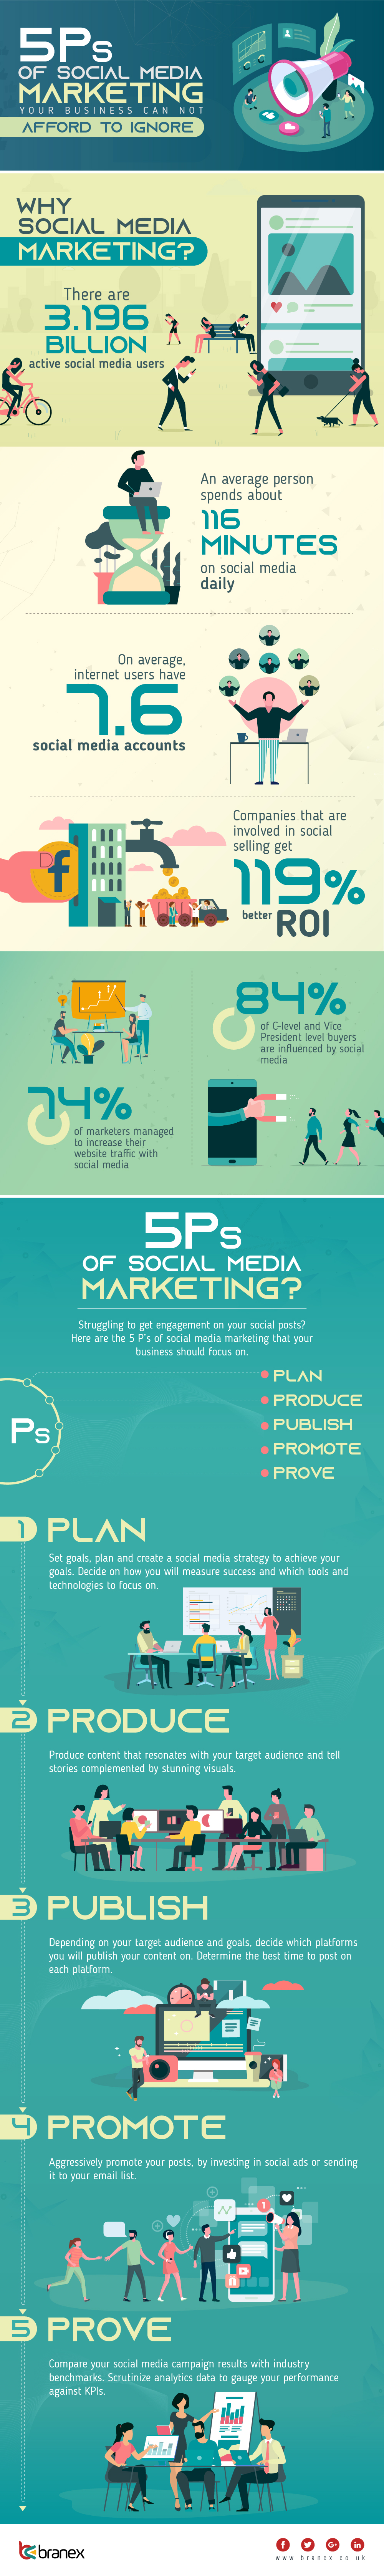 5 Ps of Social Media Marketing Your Business Can Not Afford to Ignore-01